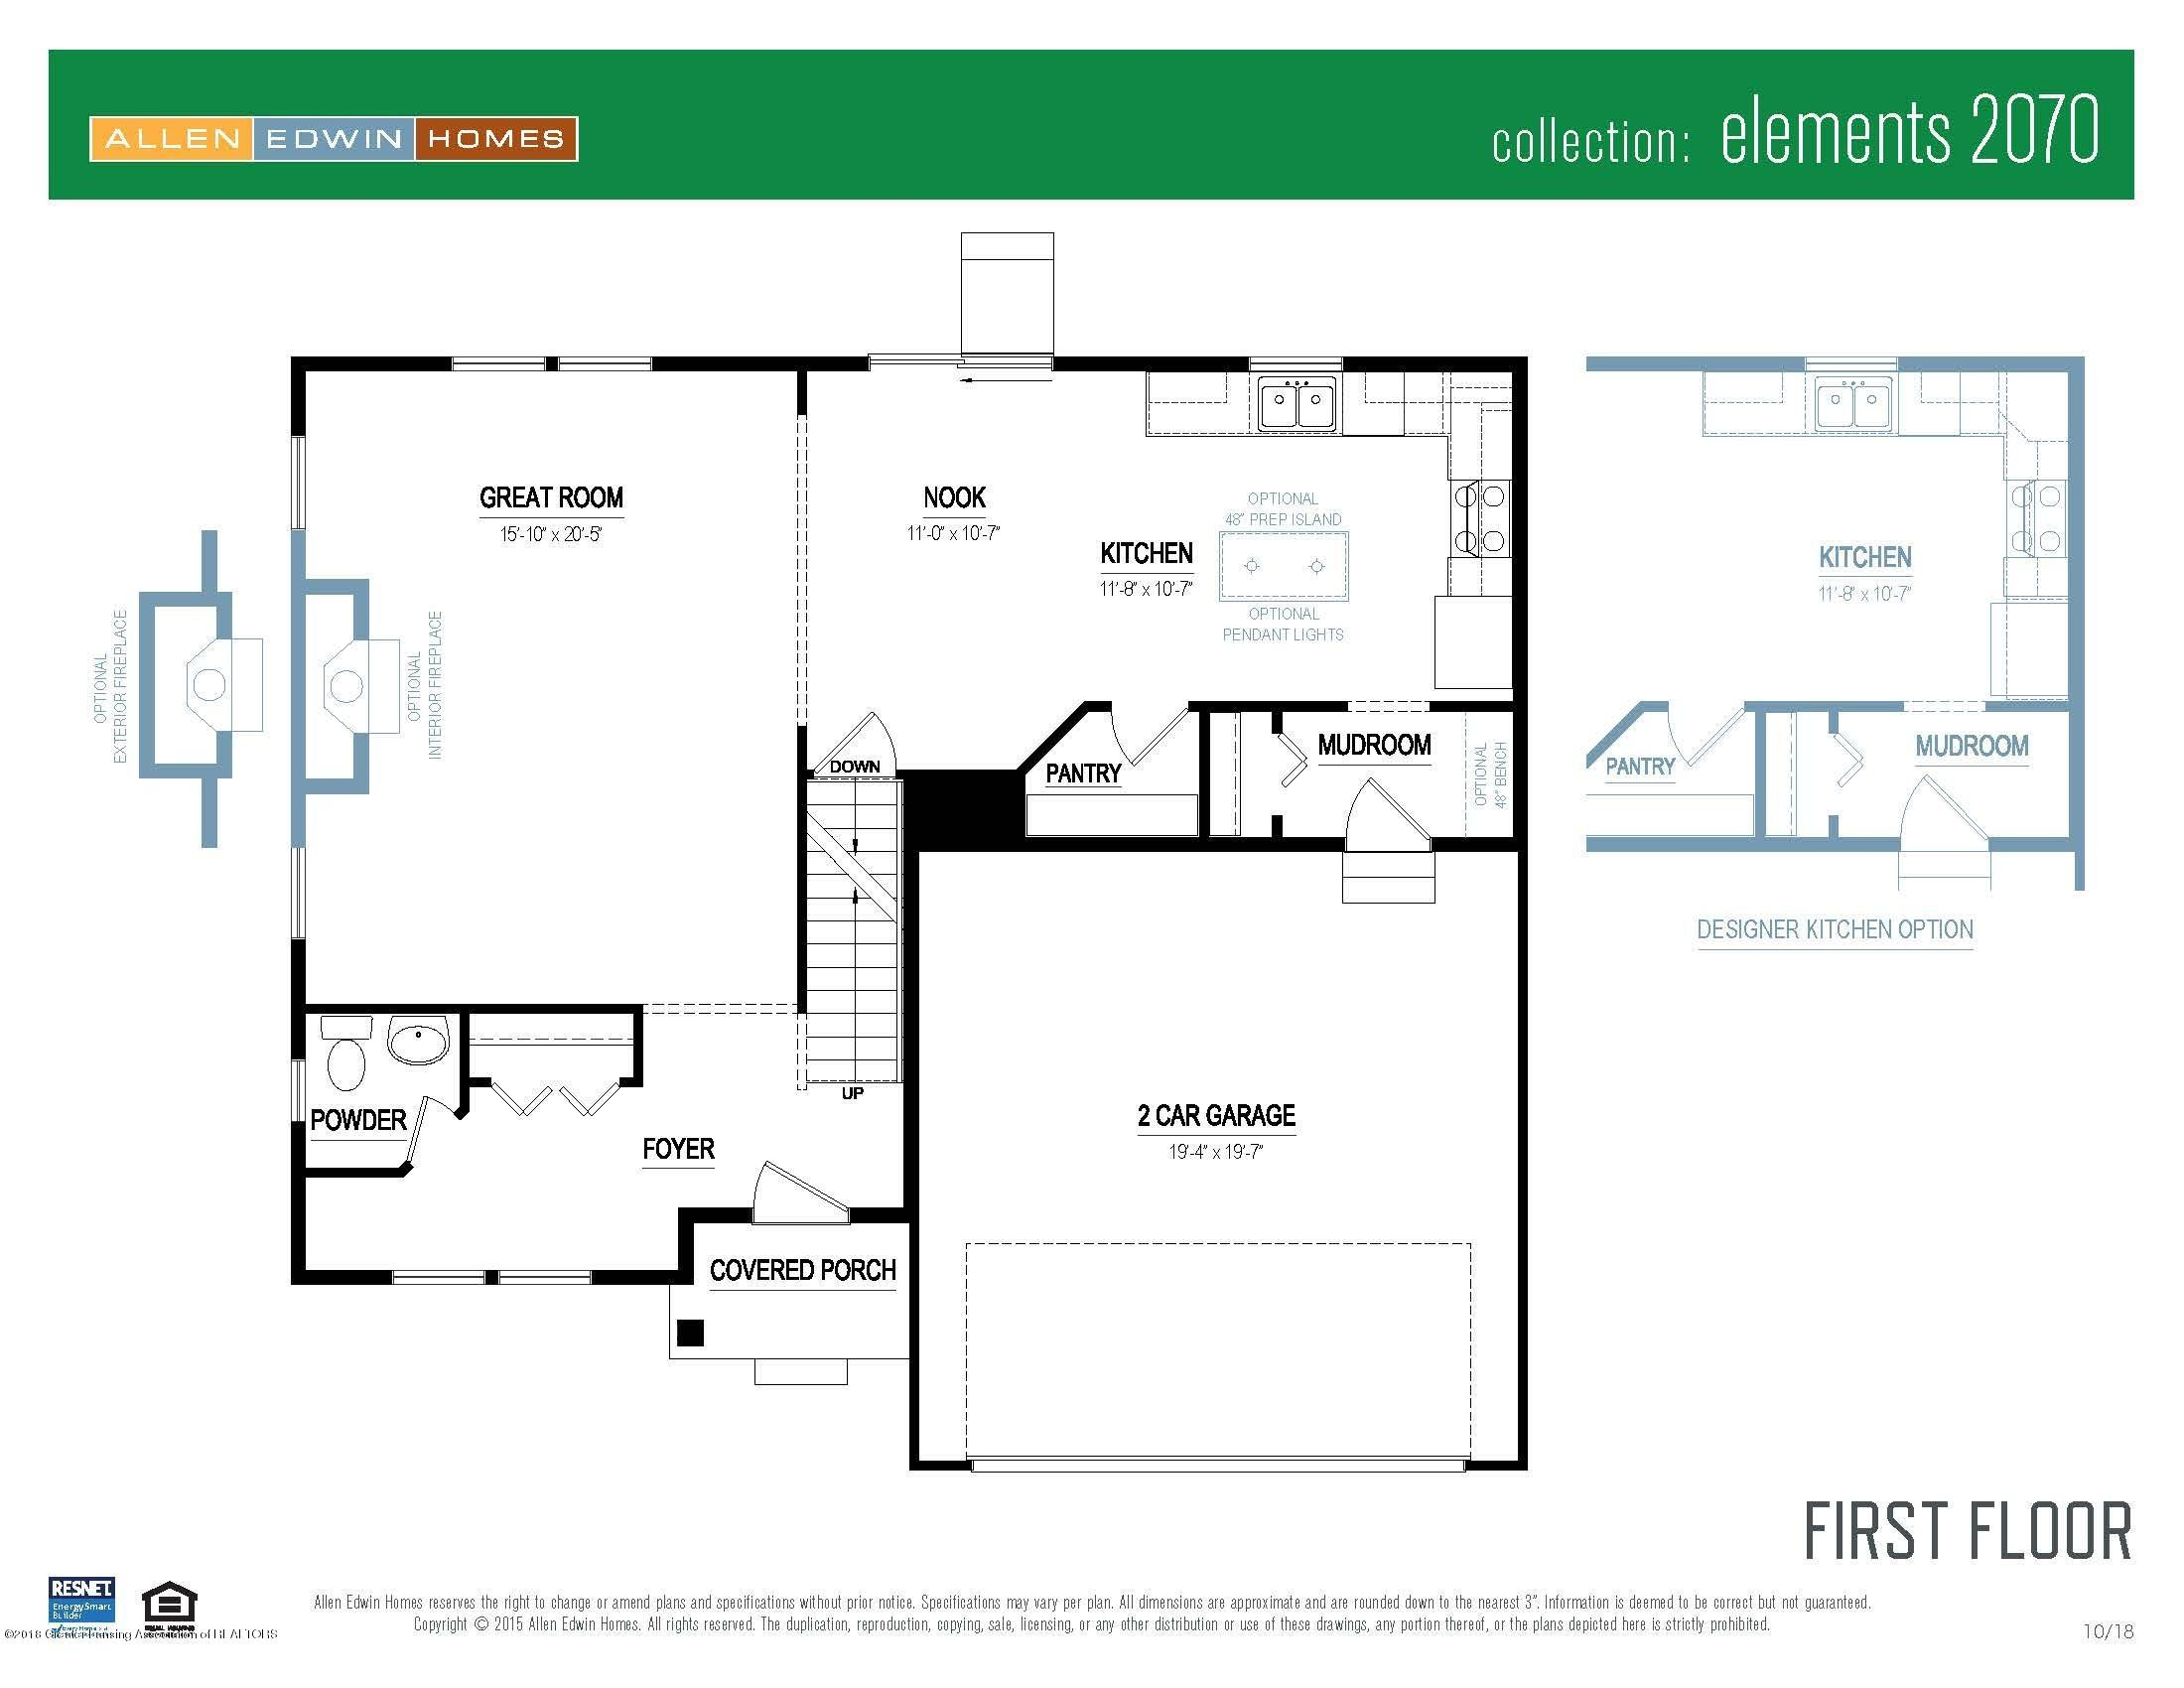 1780 Merganser Dr - Elements 2070 V8.0a First Floor - 20